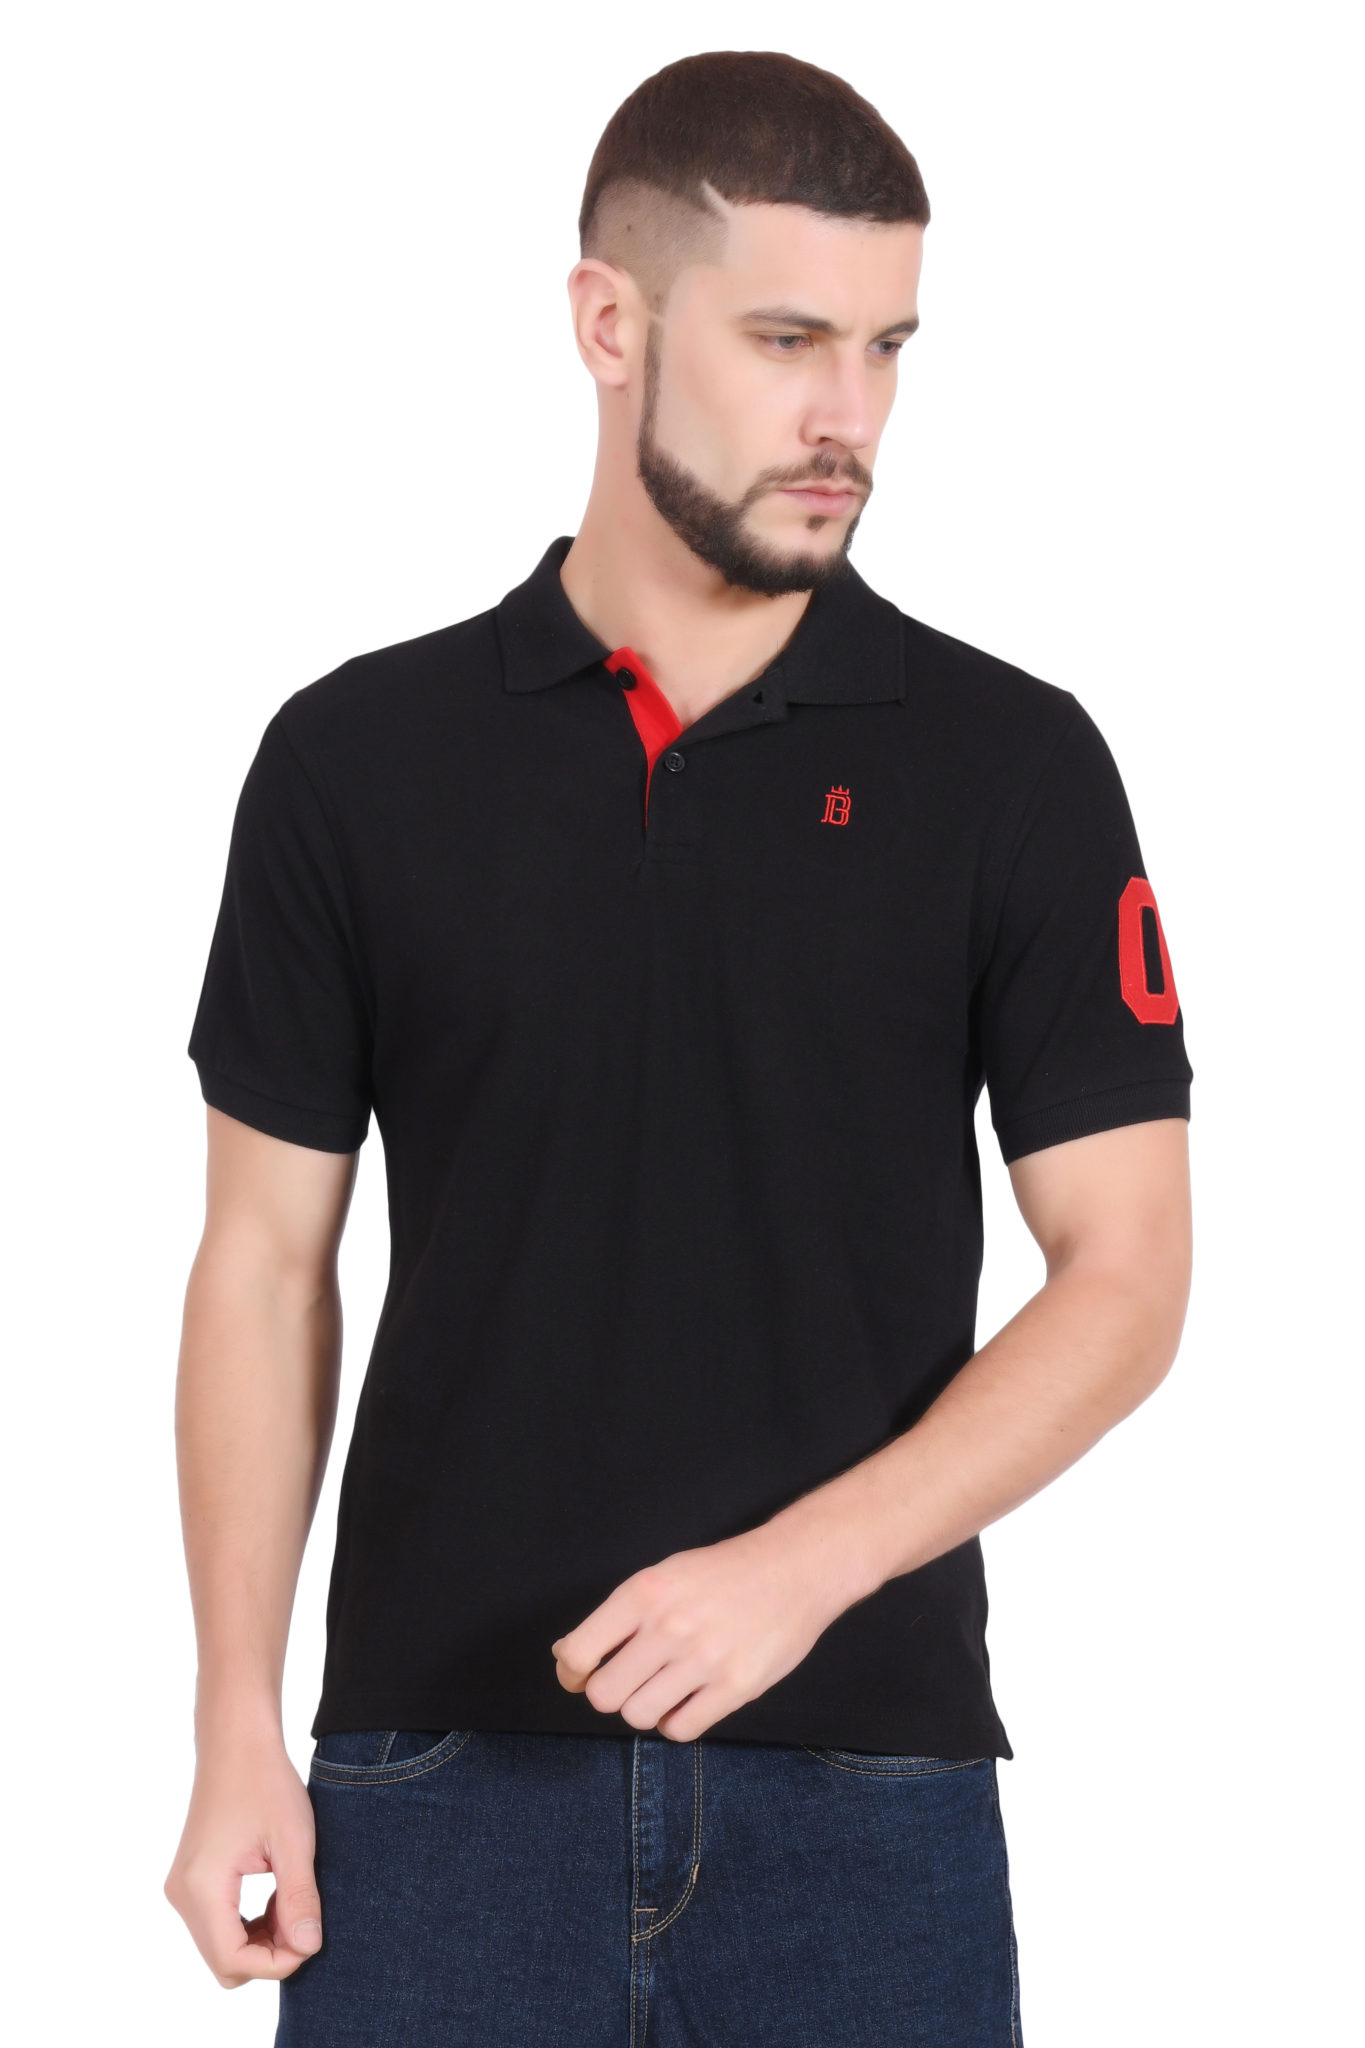 Mens Polo T-Shirt by Brave Soul 'Lincoln' Pique Long ... |Polo T Shirts For Men 2013